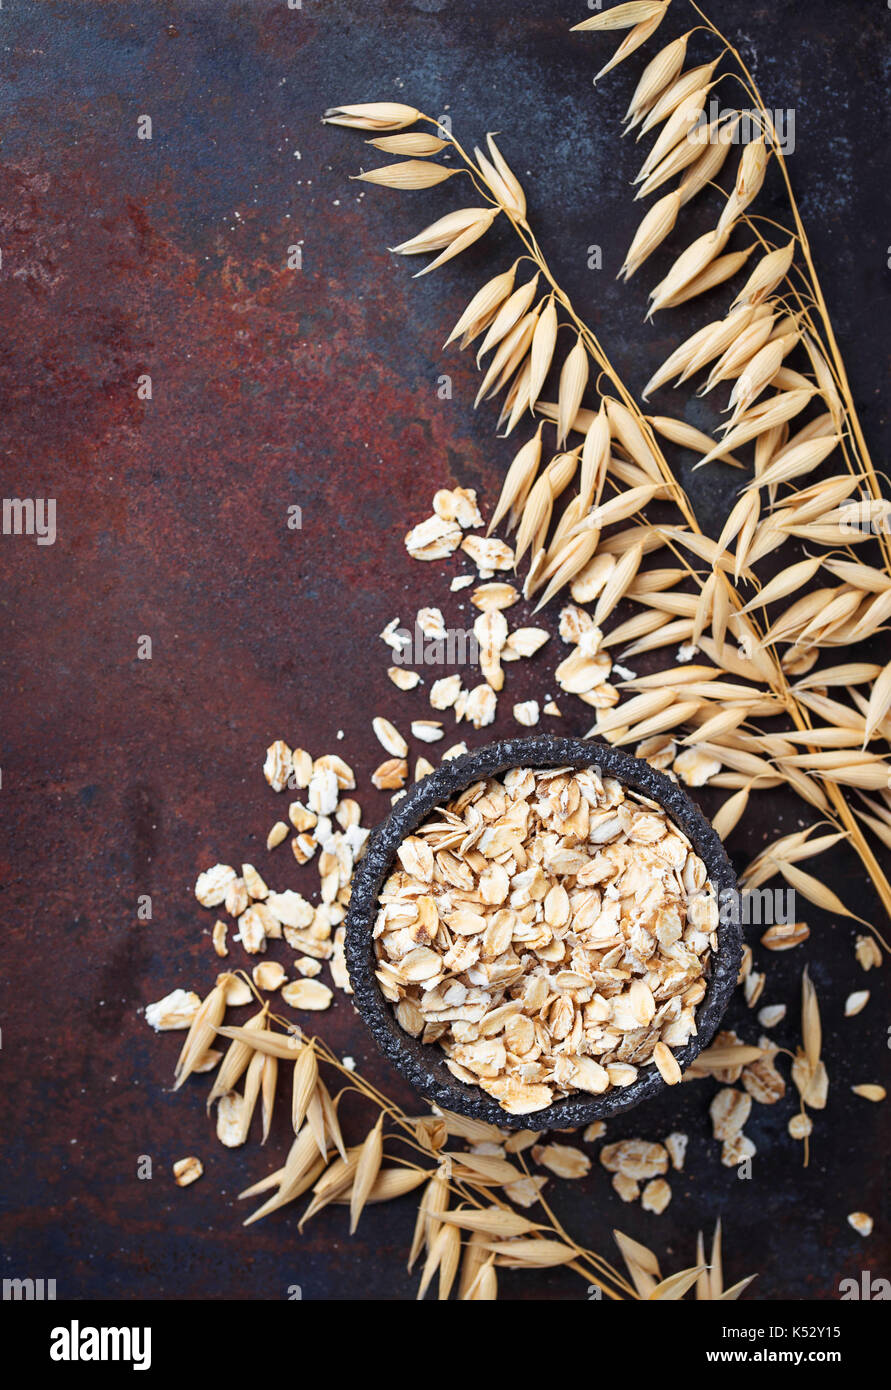 Oat flakes and spikelets on rusty background - Stock Image